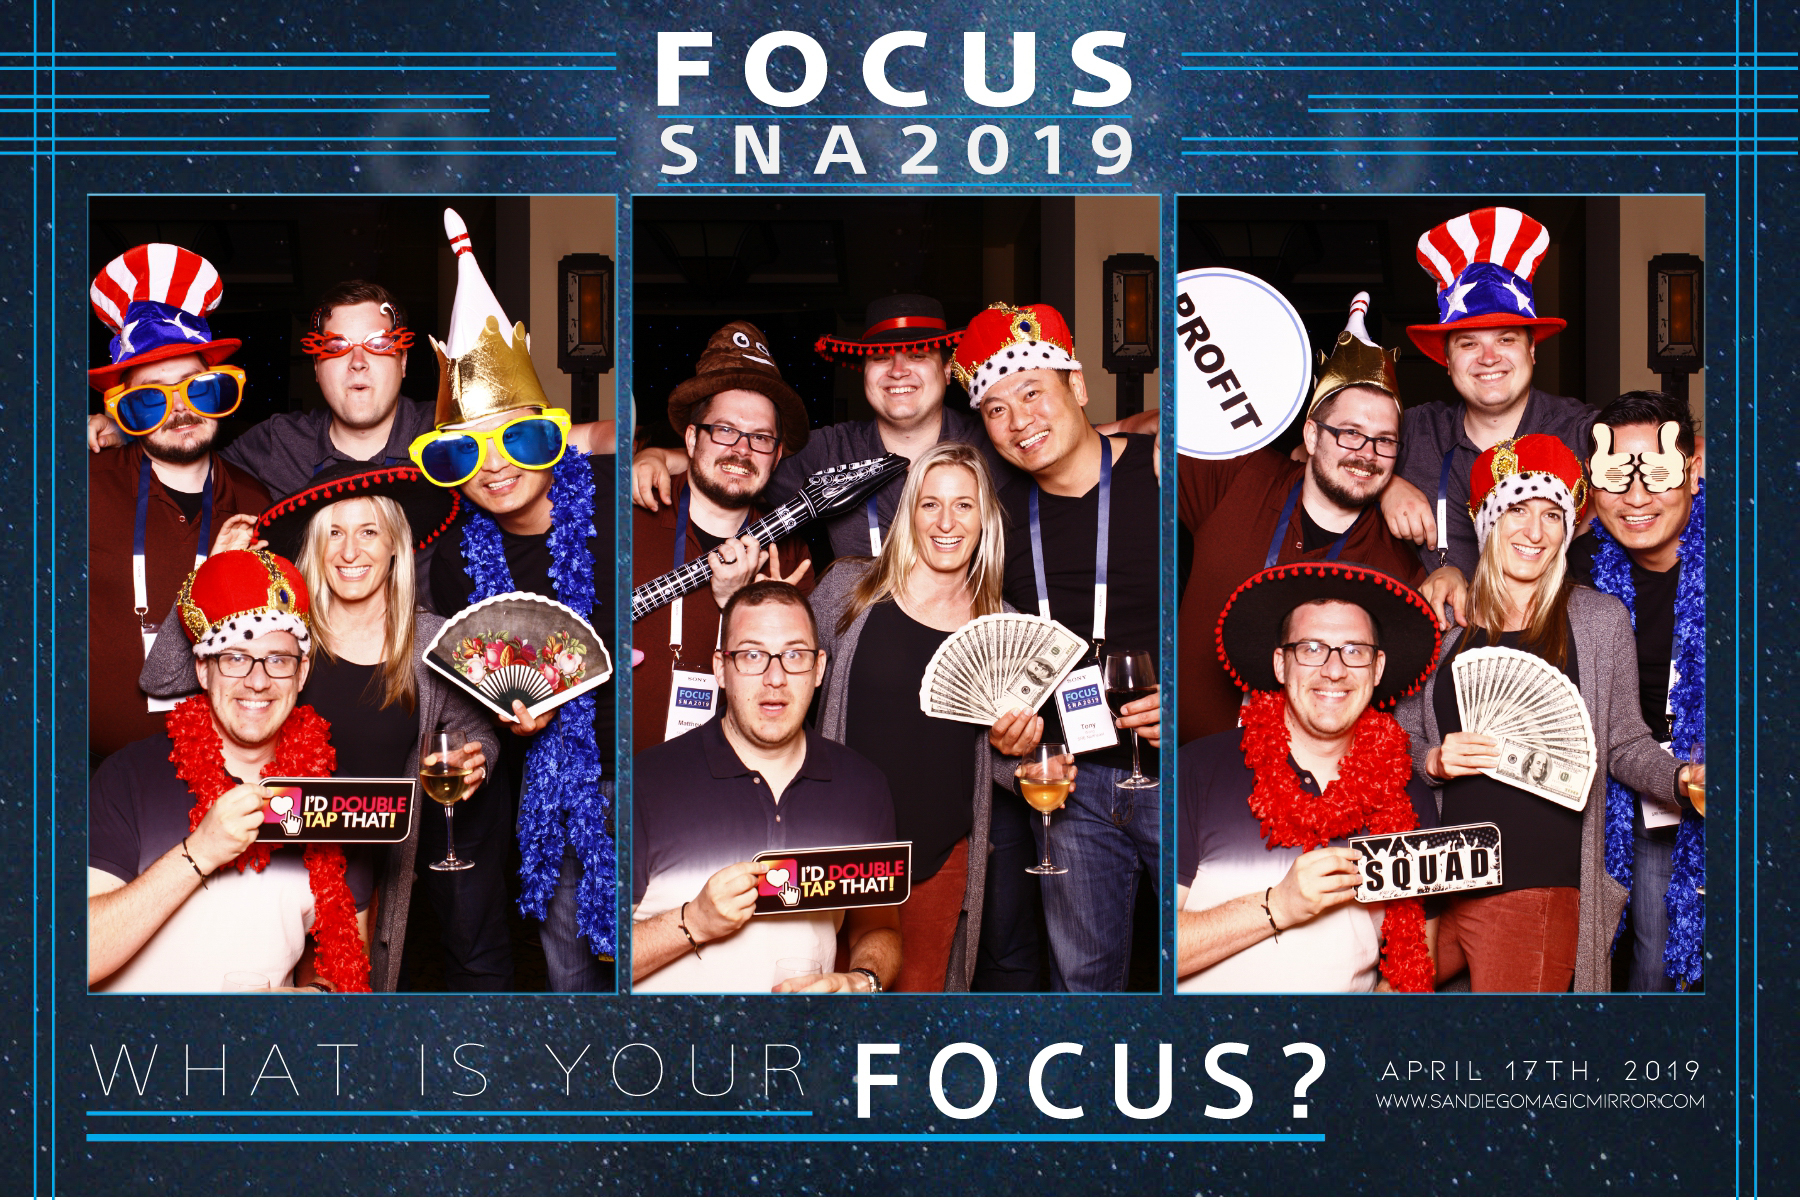 San Diego Magic Mirror Photobooth, SNA Focus 2019 by SONY in San Diego, CA